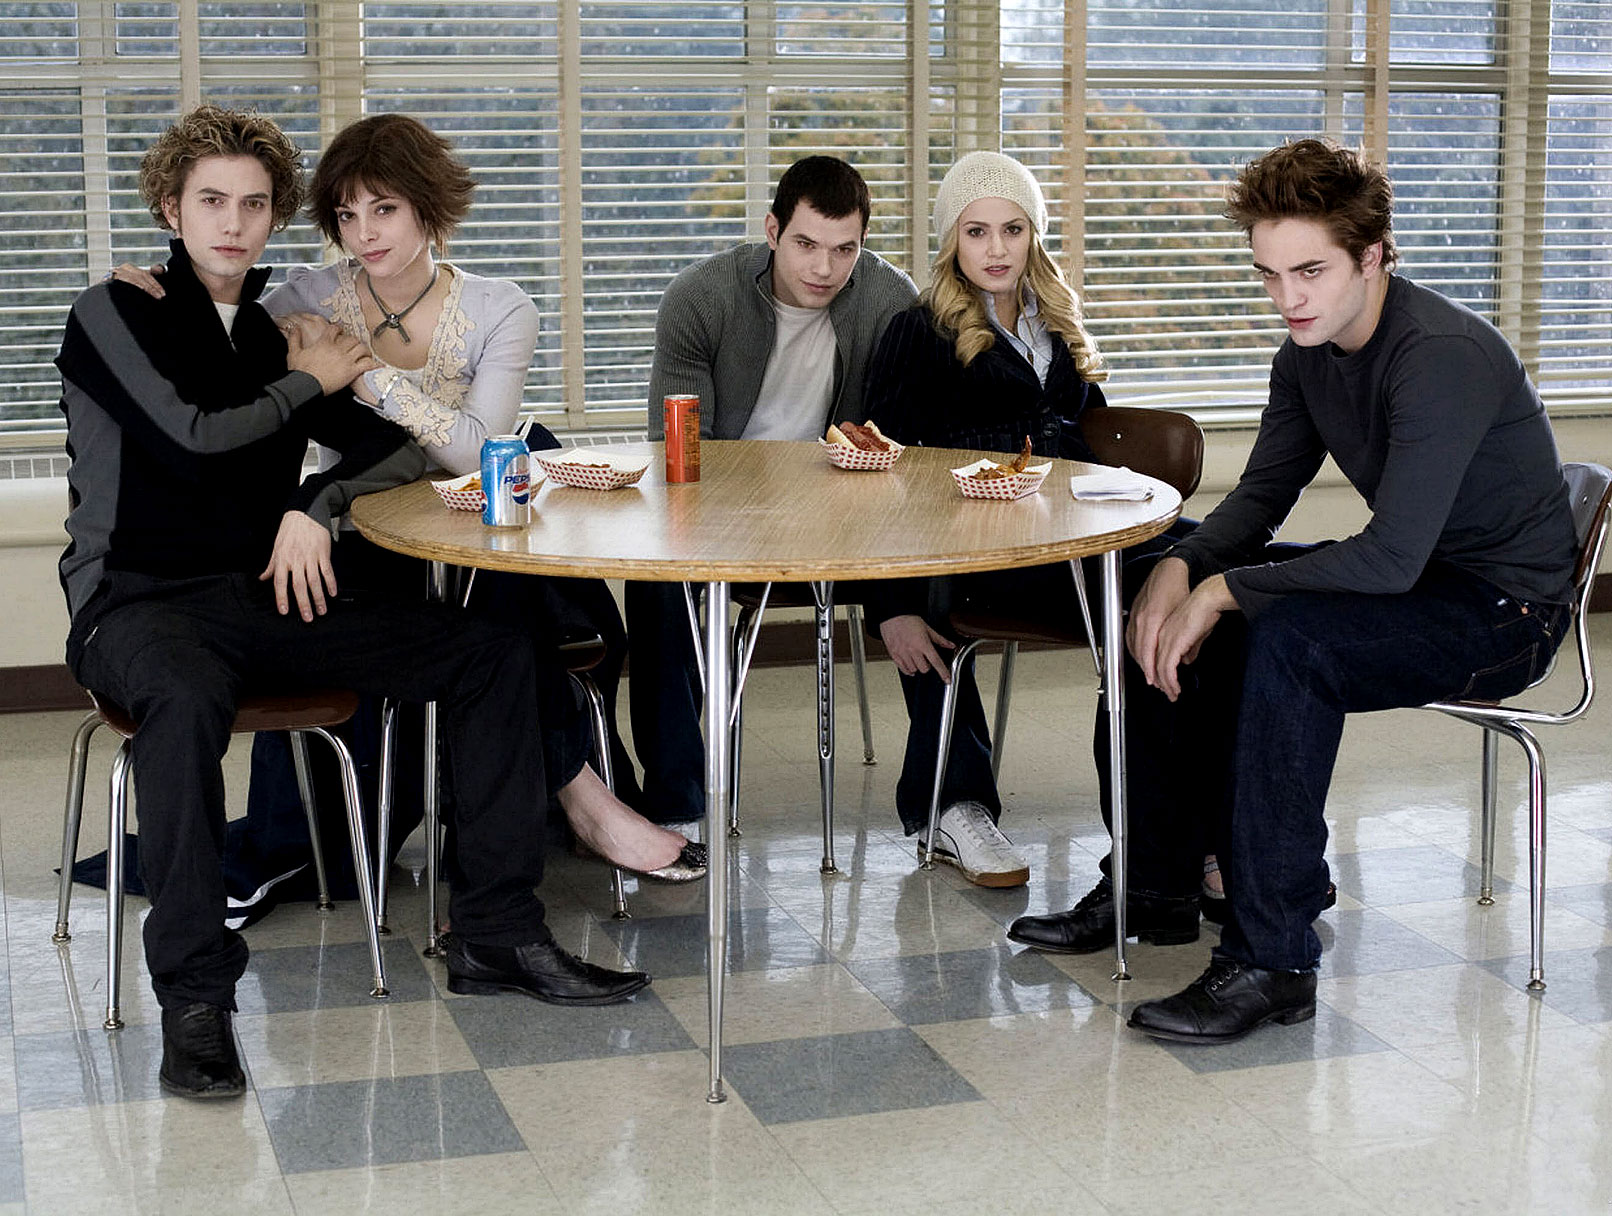 New Reality Show Awards 'Twilight' Role